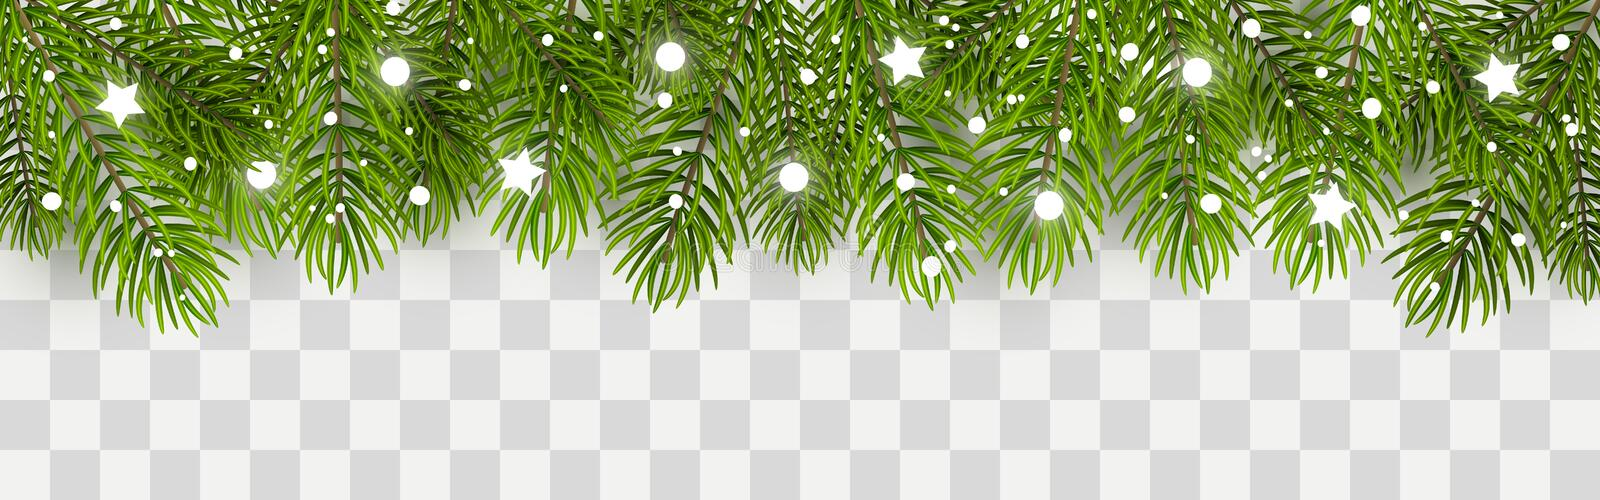 Kerstboomgrens met decor vector illustratie